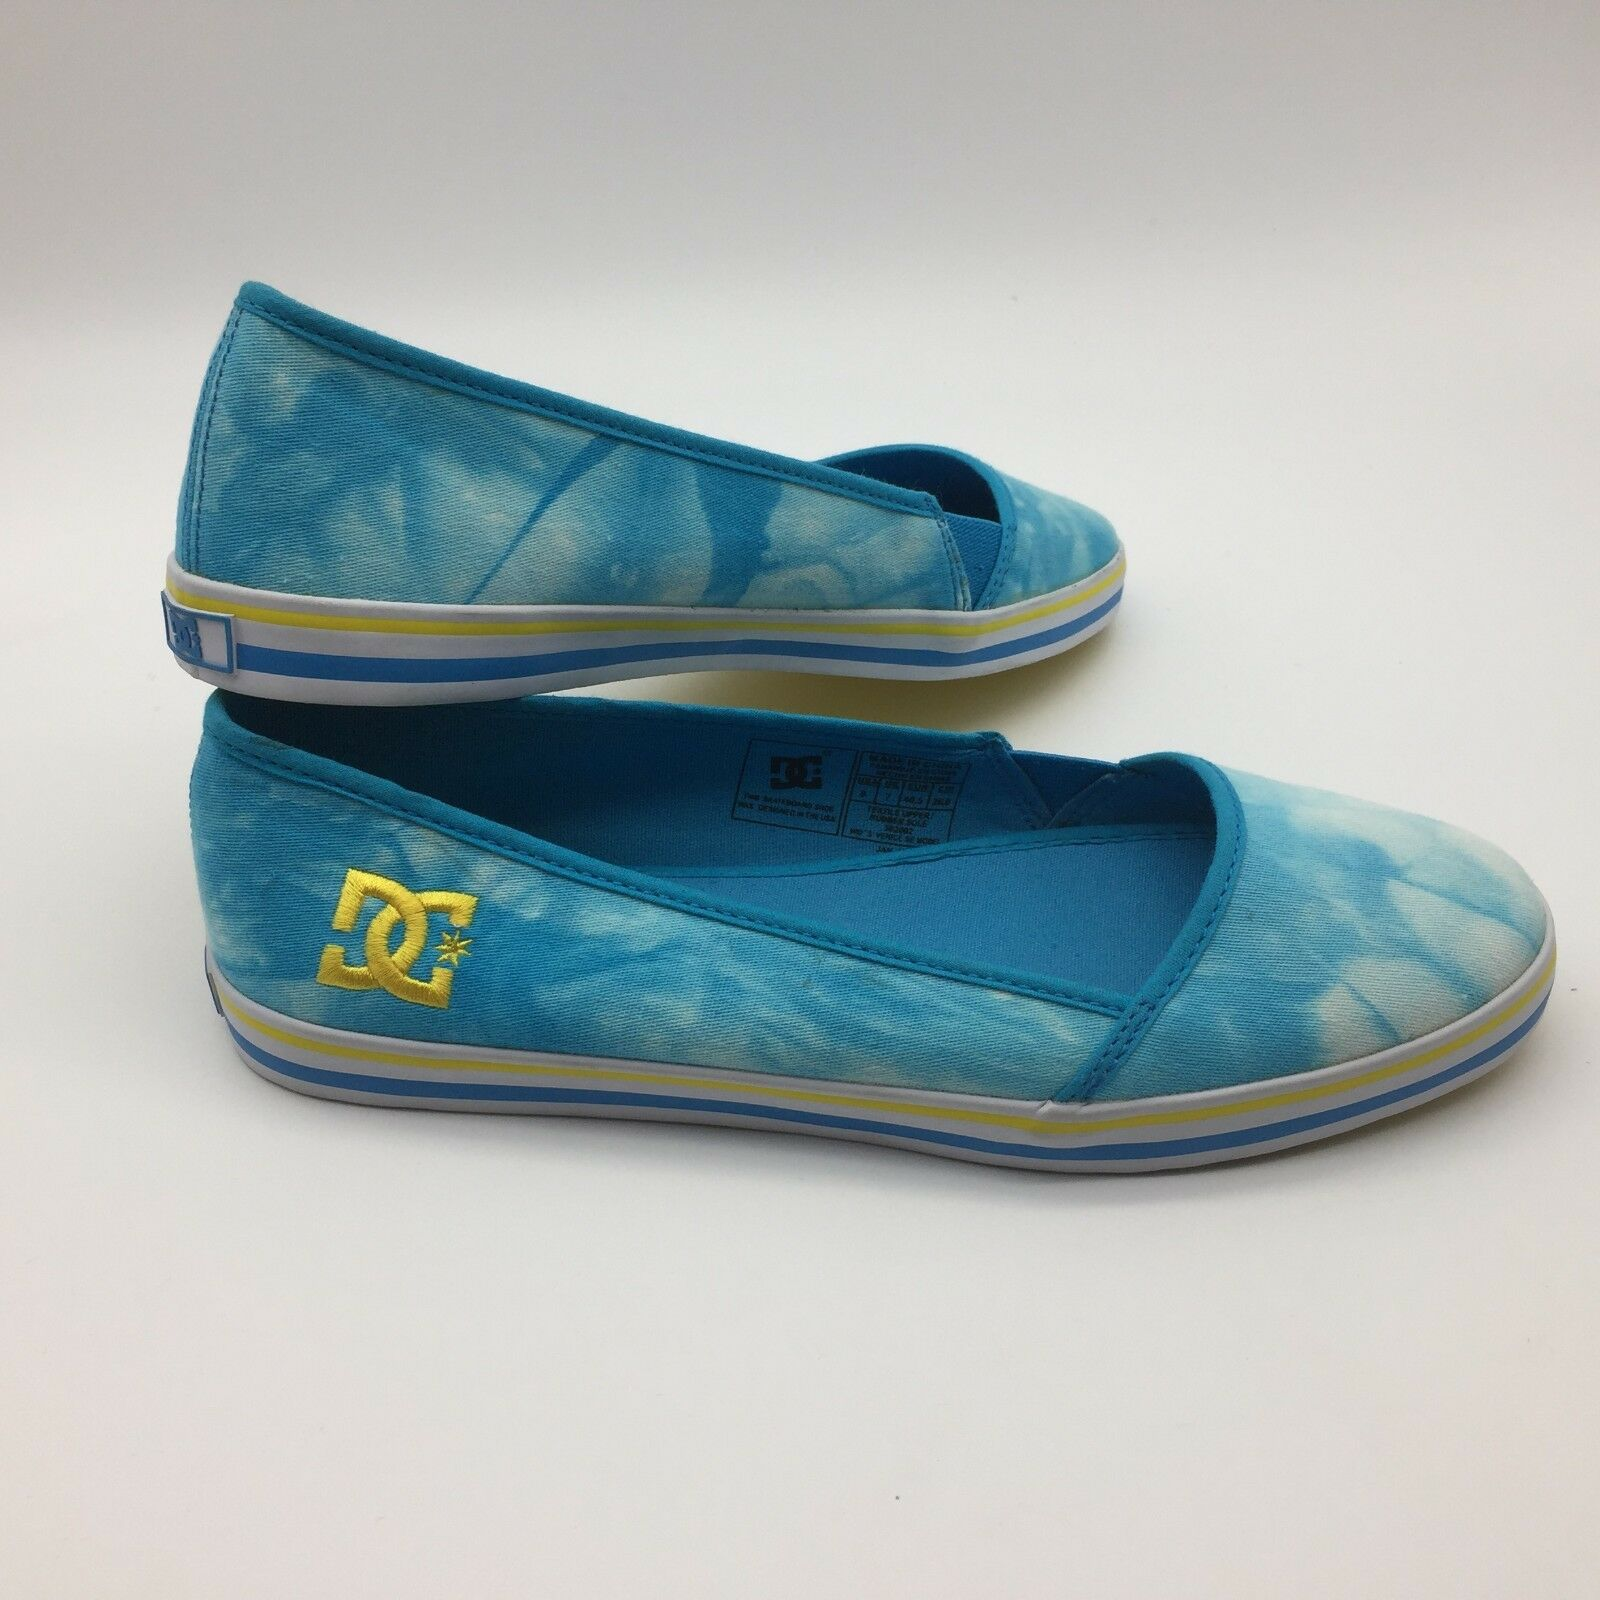 DC Women's shoes  Slip On  Skybluee Yellow